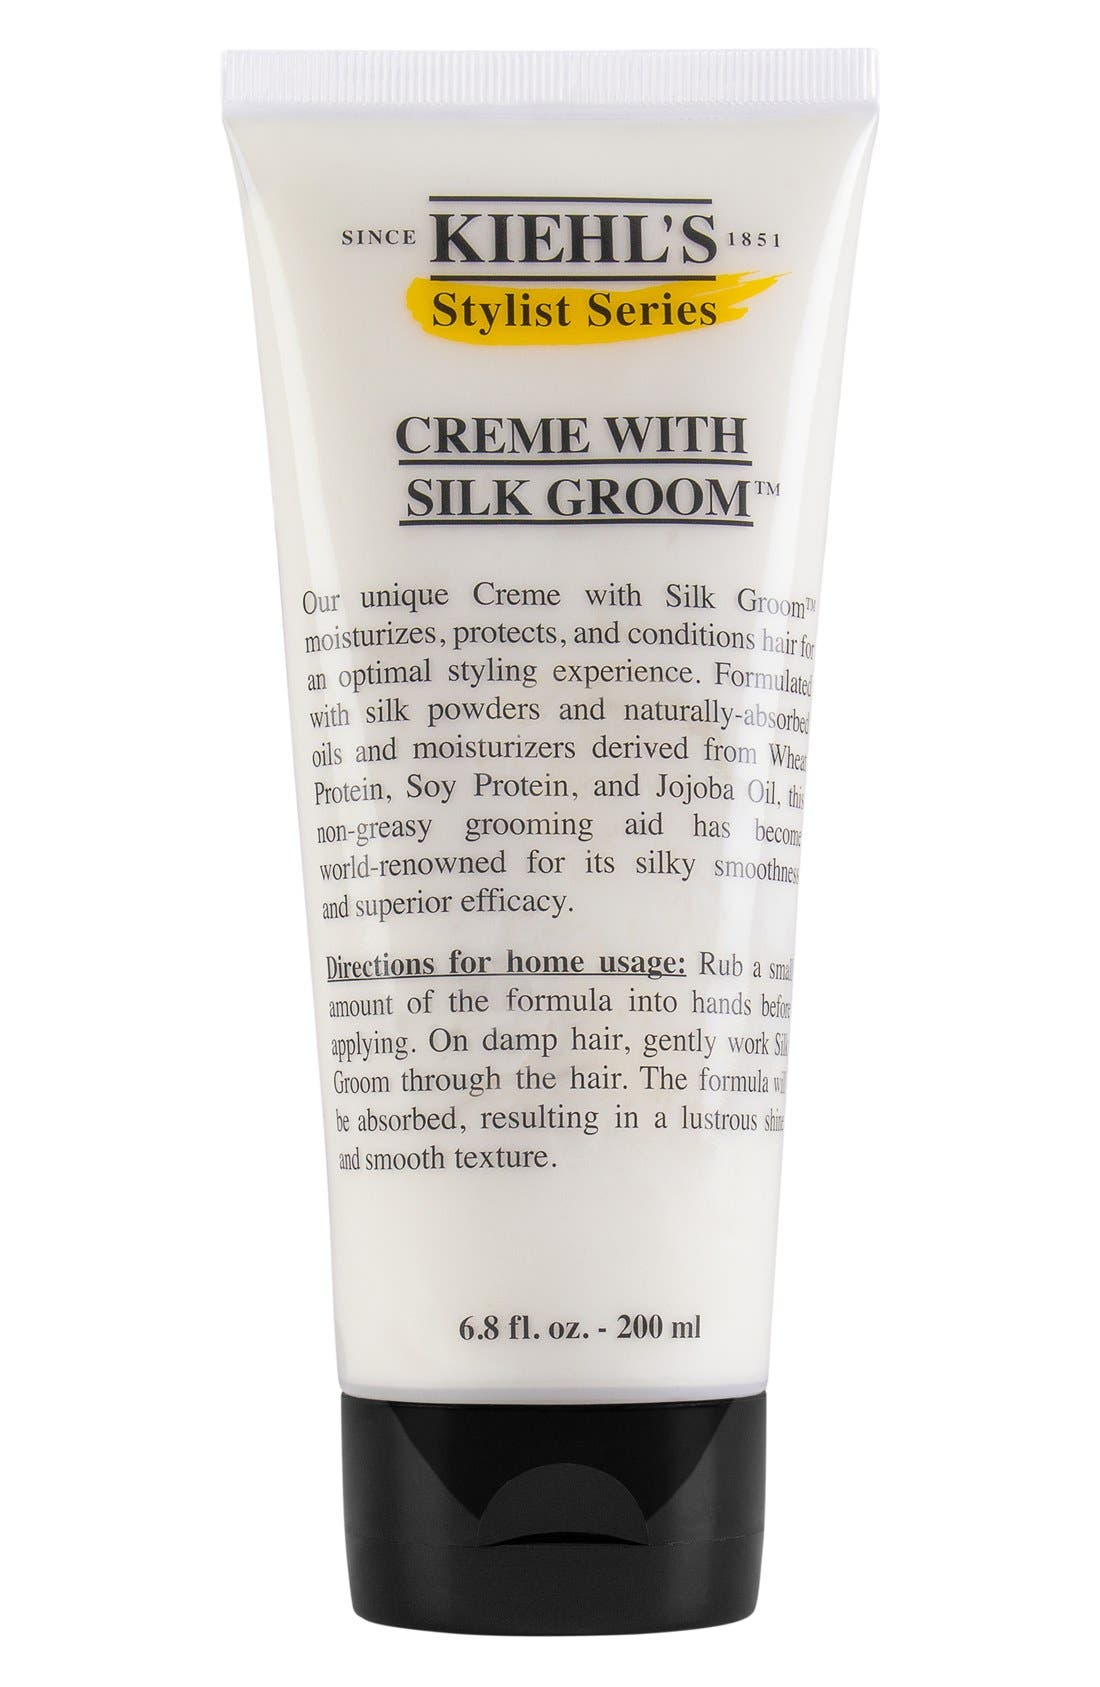 What it is: A nongreasy grooming aid for lustrous hair shine and a smooth texture. What it does: It\\\'s formulated with silk powders along with naturally absorbed oils and moisturizers derived from wheat protein, soy protein and jojoba oil for a formula that\\\'s world-renowned for its silky smoothness and superior efficacy. How to use: Begin by shampooing your hair, then rub a small amount of the styling creme into your hands before applying. Work